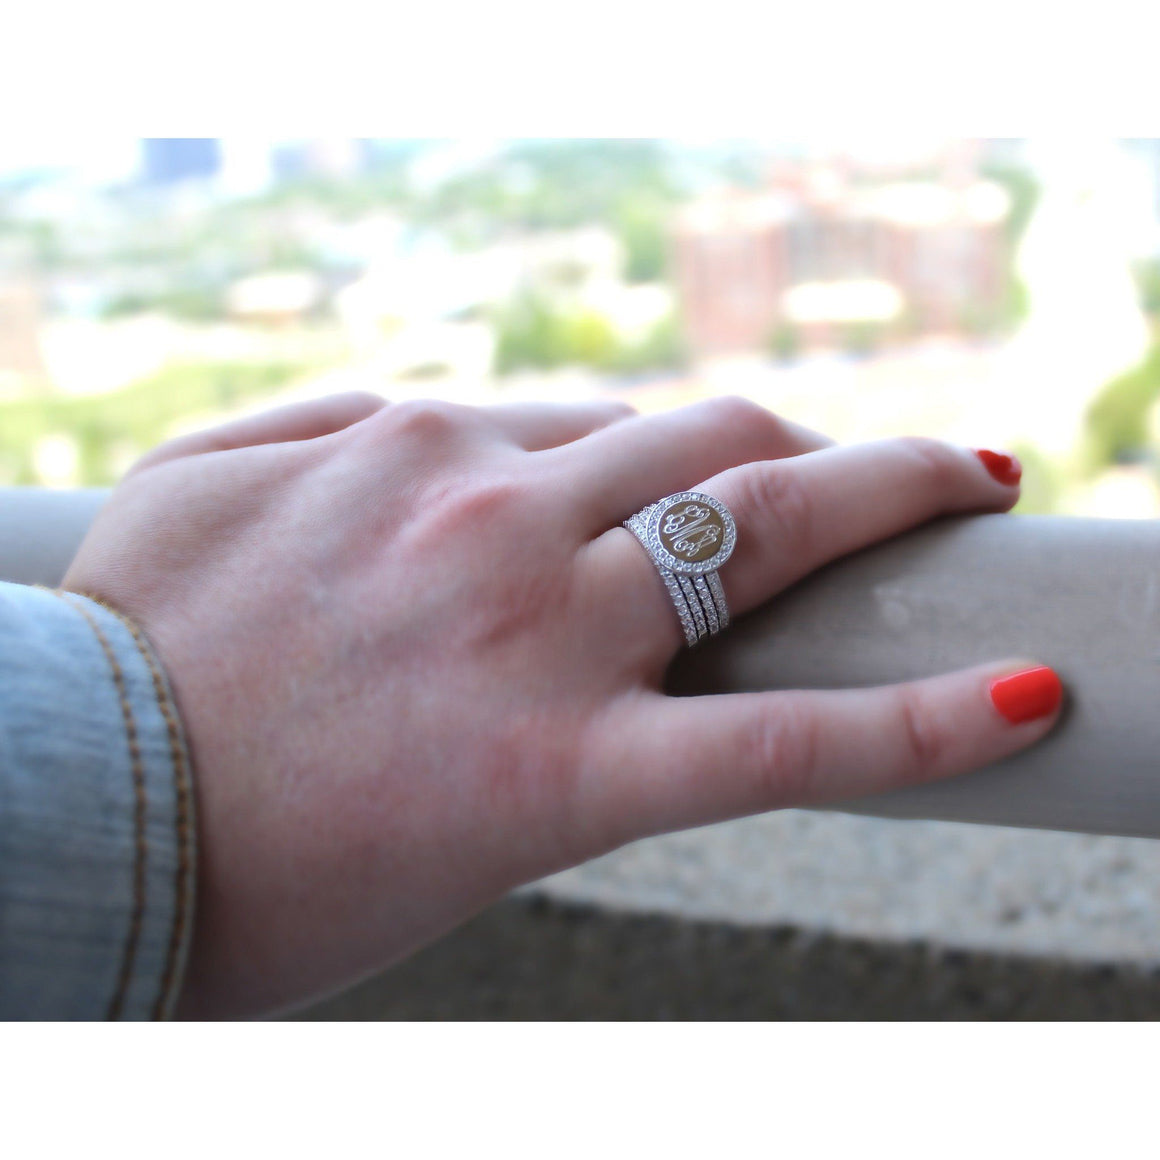 Monogram Stacking Rings with Cubic Zirconia in Sterling Silver